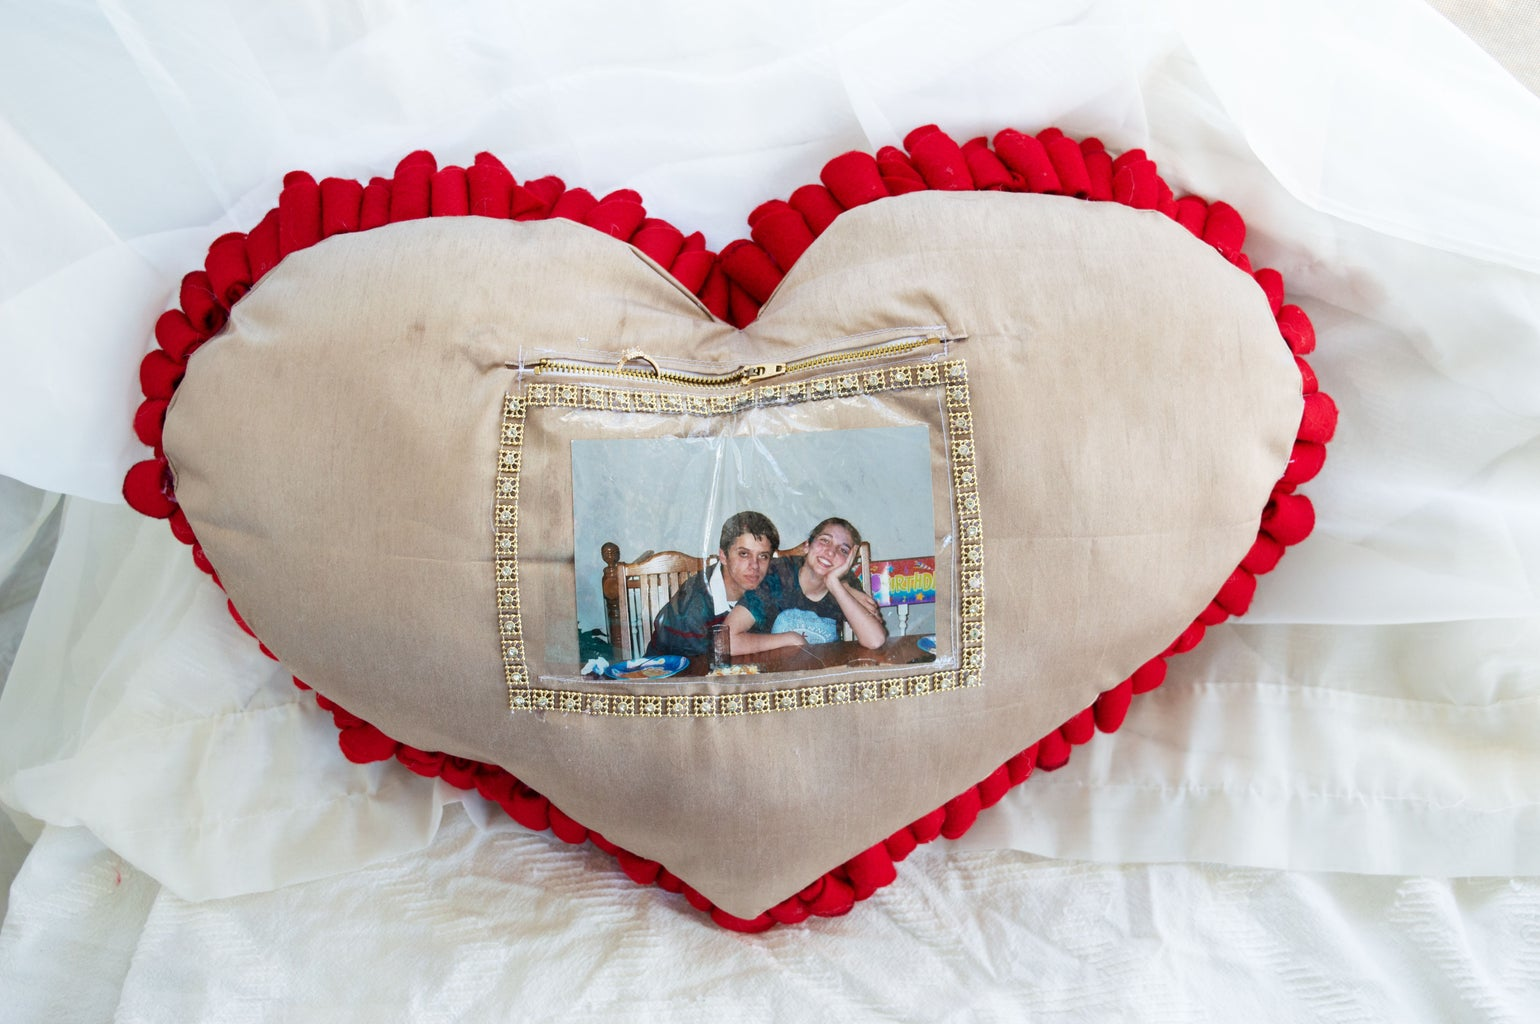 The Proposal Pillow